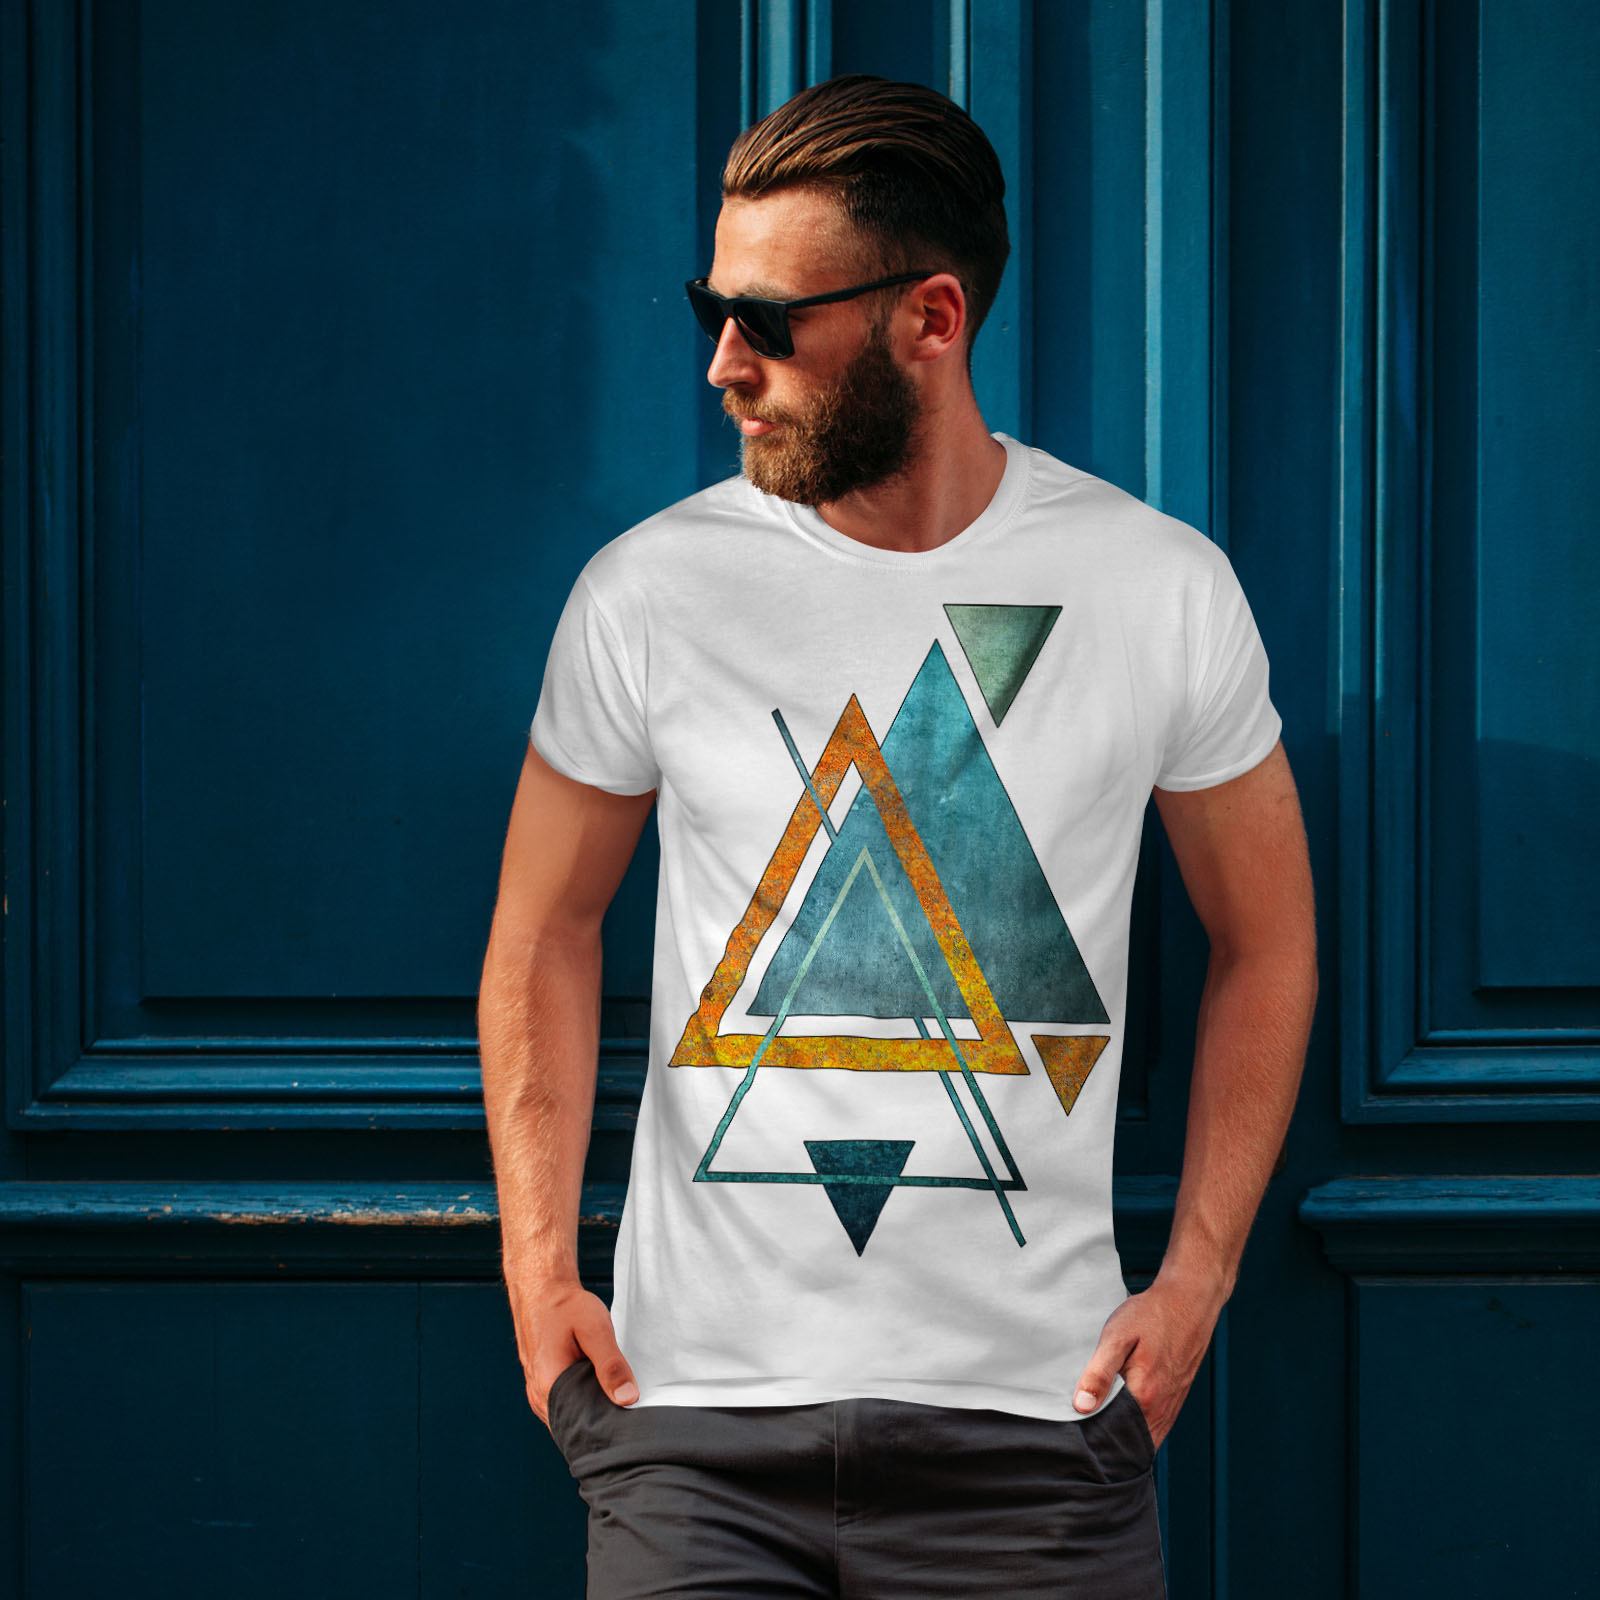 Wellcoda-Abstract-Triangle-T-shirt-homme-forme-design-graphique-imprime-Tee miniature 10